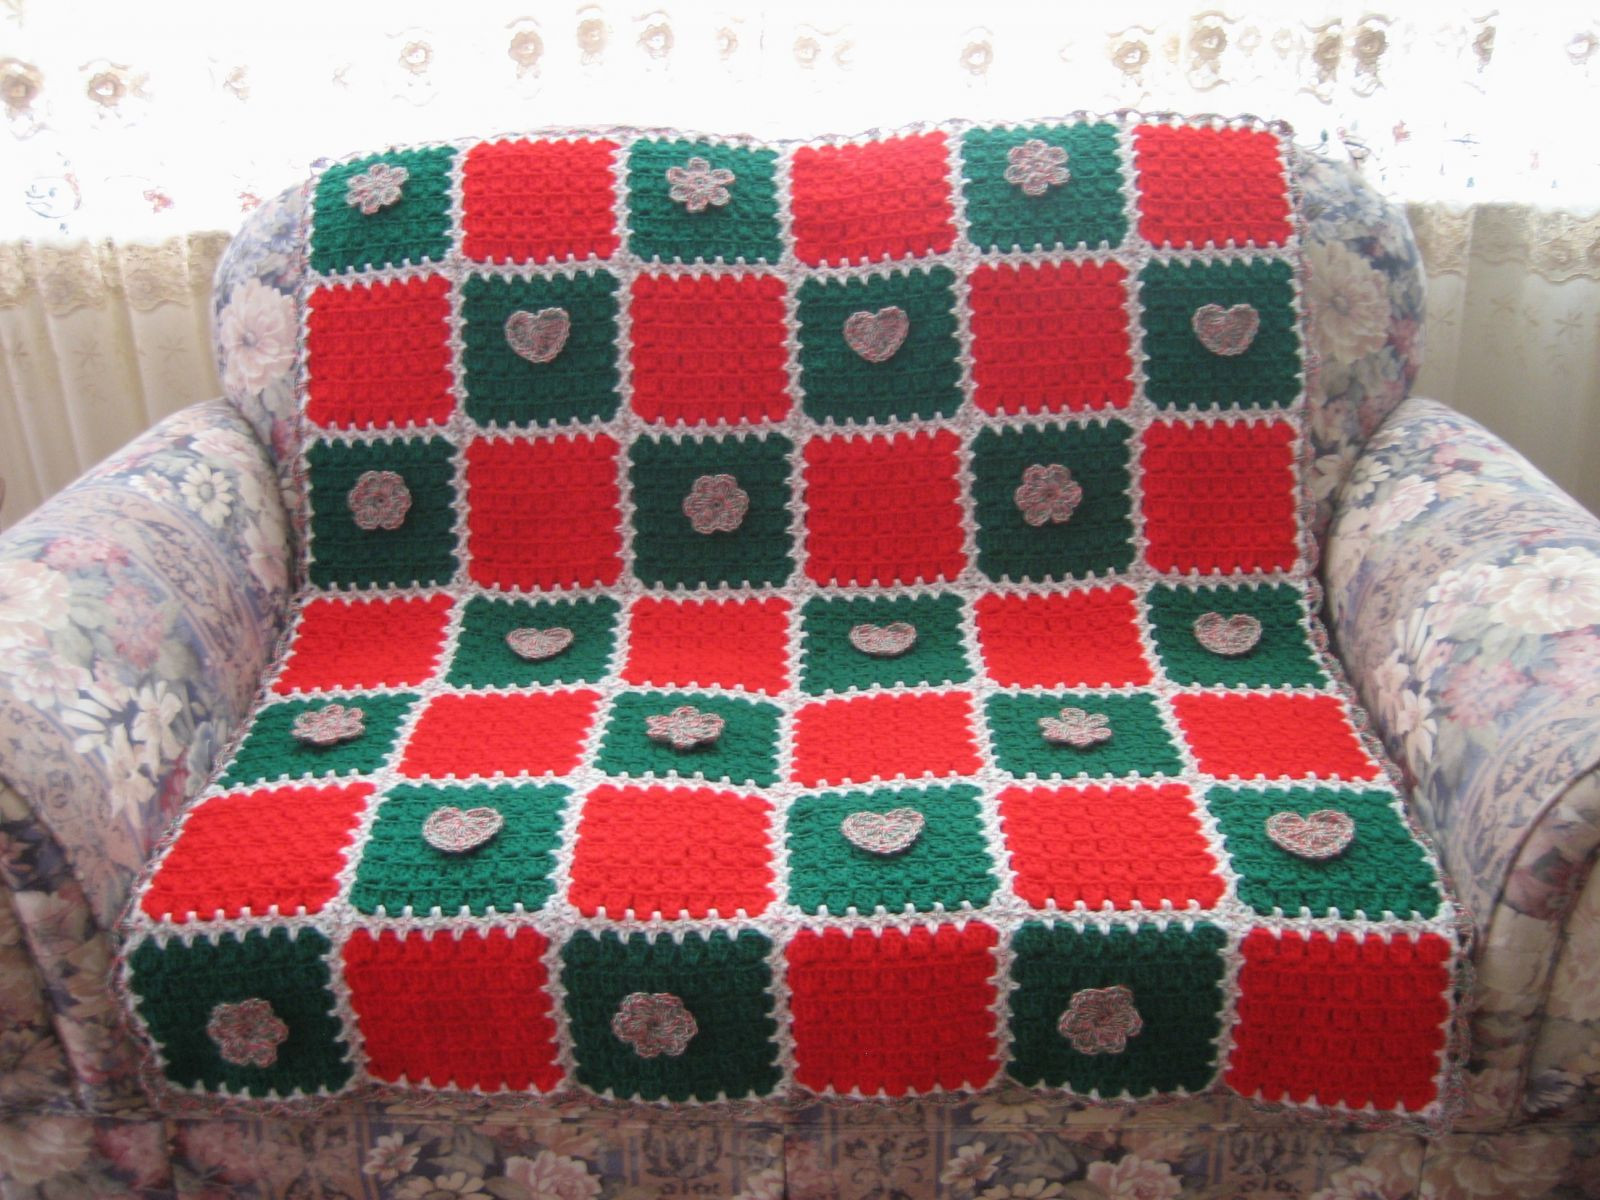 Free Baby Afghan Patterns Awesome 39 Free Baby Afghan Crochet Patterns Of Attractive 40 Ideas Free Baby Afghan Patterns